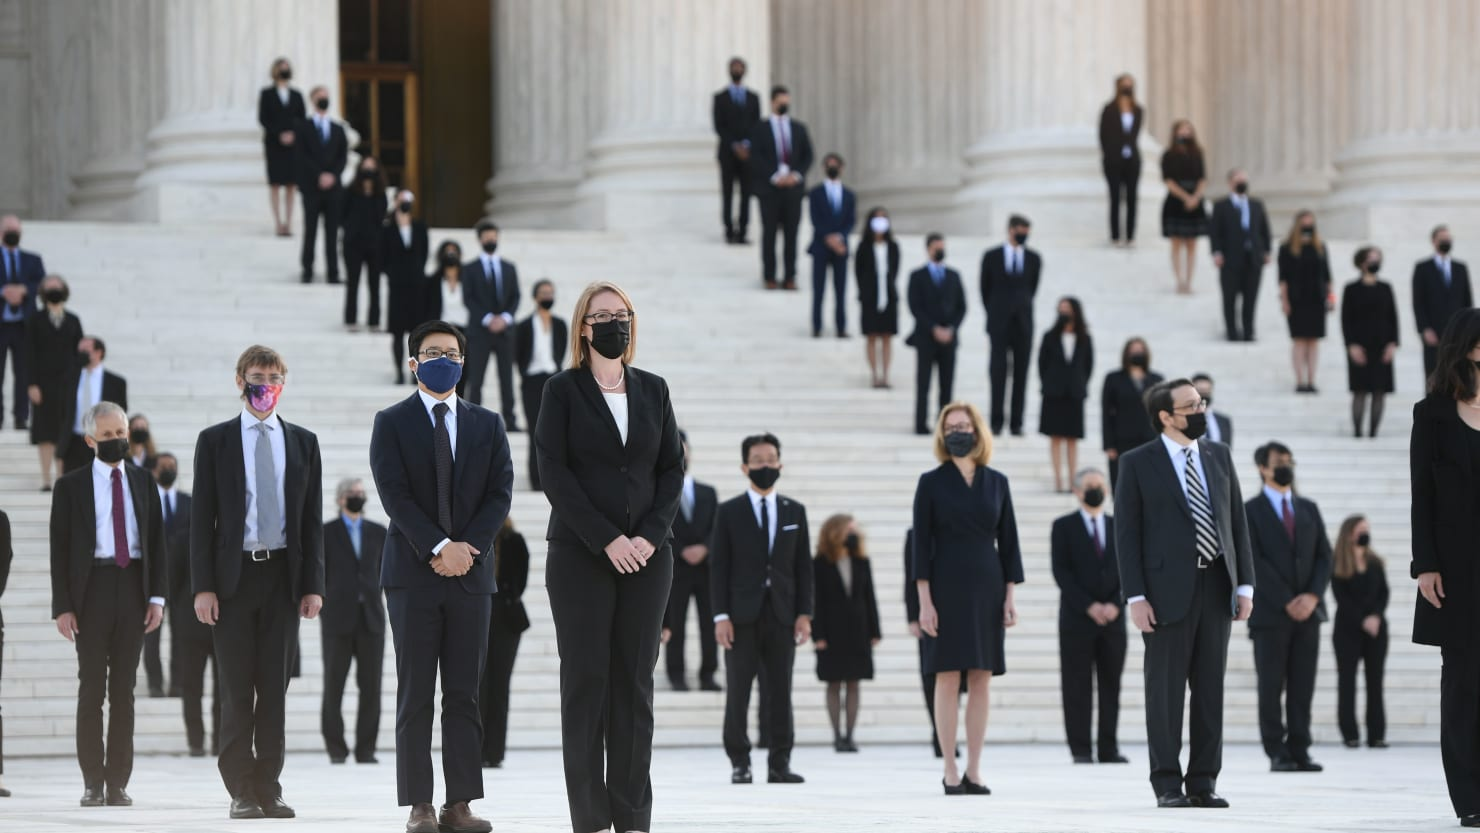 120 of Ruth Bader Ginsburg's Clerks Line Supreme Court Steps As Her Casket Is Brought In